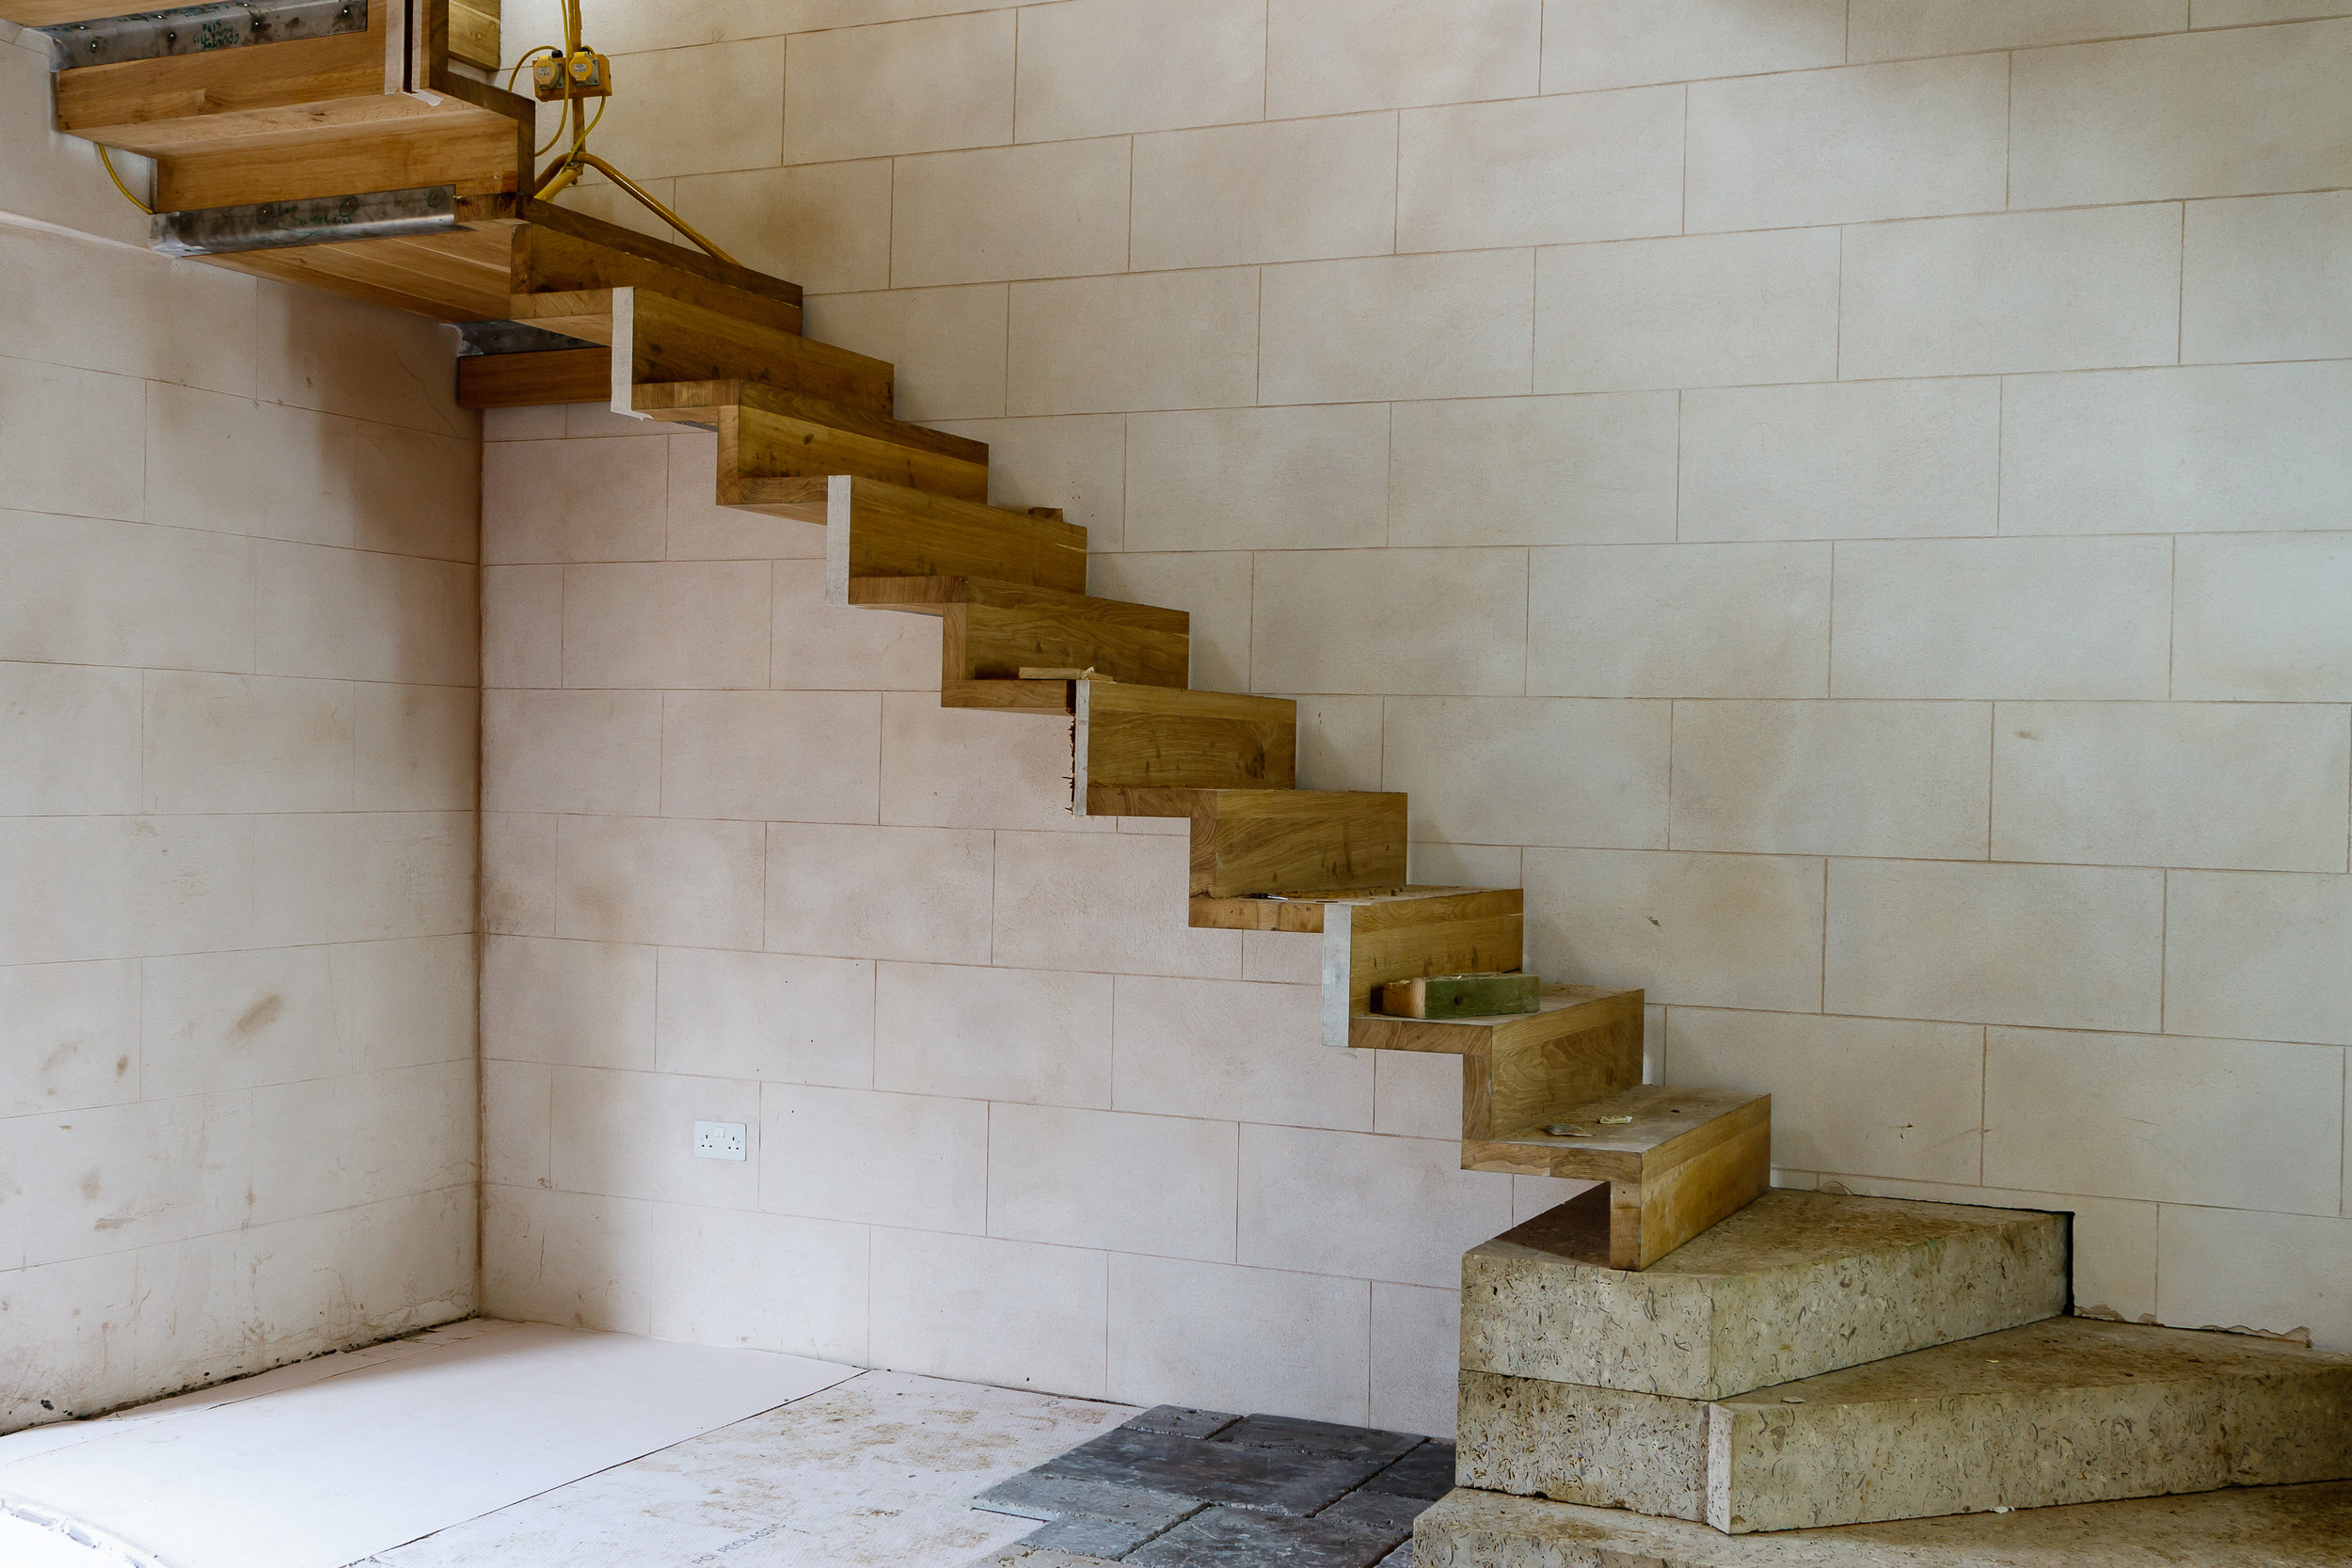 Glynde Place - Phase I - New staircase in Entrace Hall (Carlotta Luke).jpg